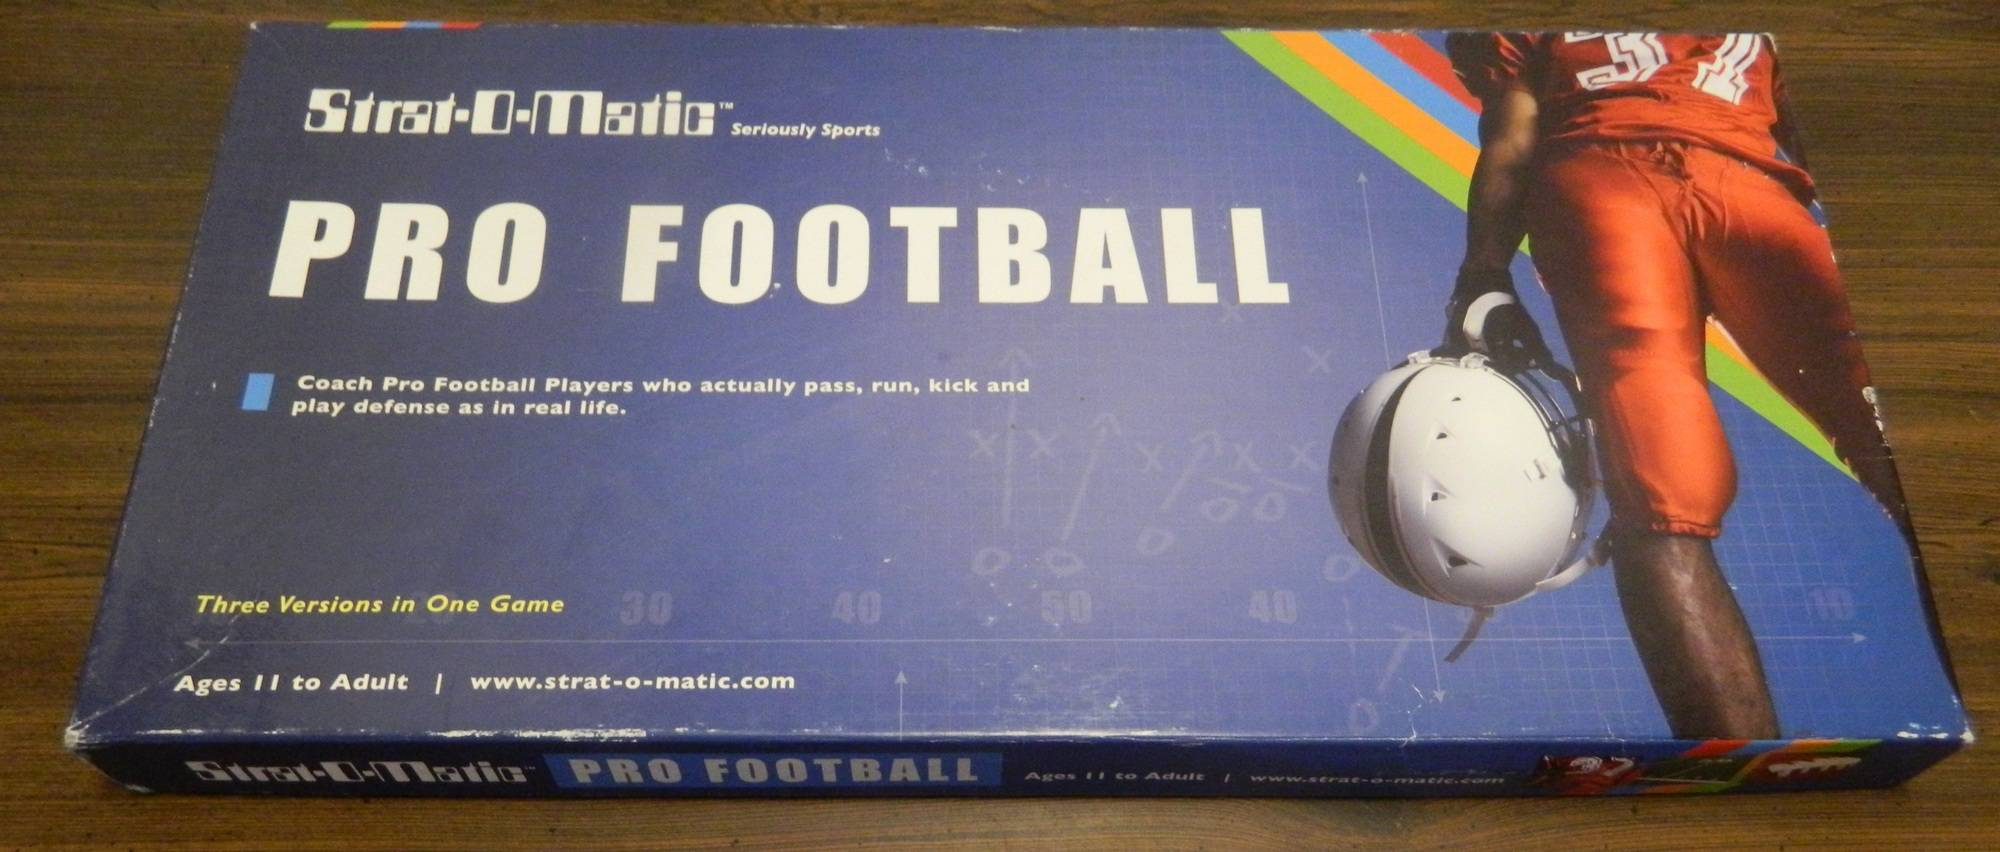 Box for Strat-O-Matic Pro Football